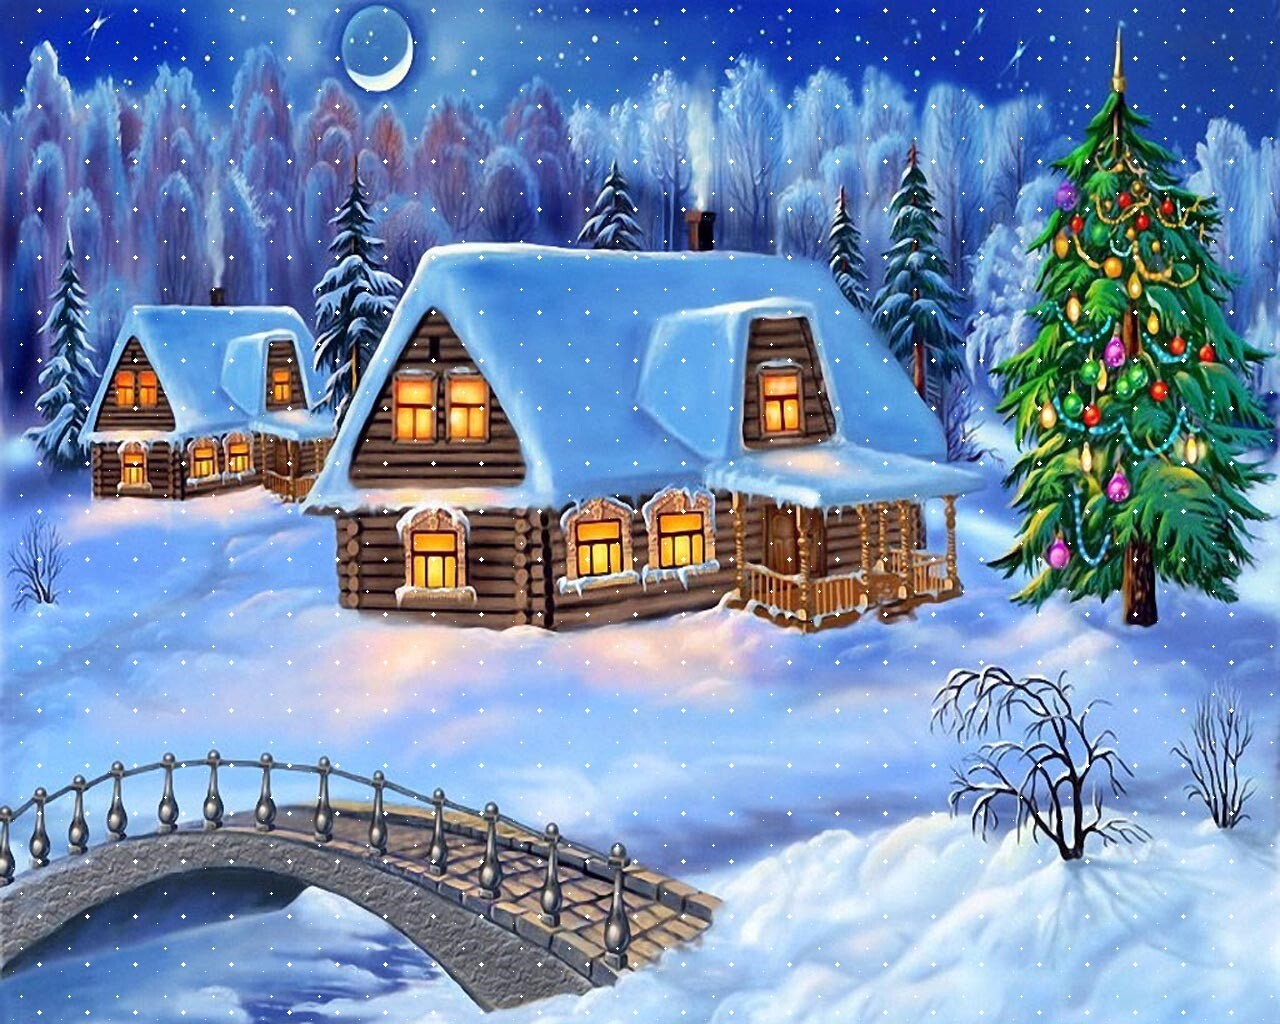 Snowy Christmas Night Decoration with Christmas Tree Wallpaper | HD ...